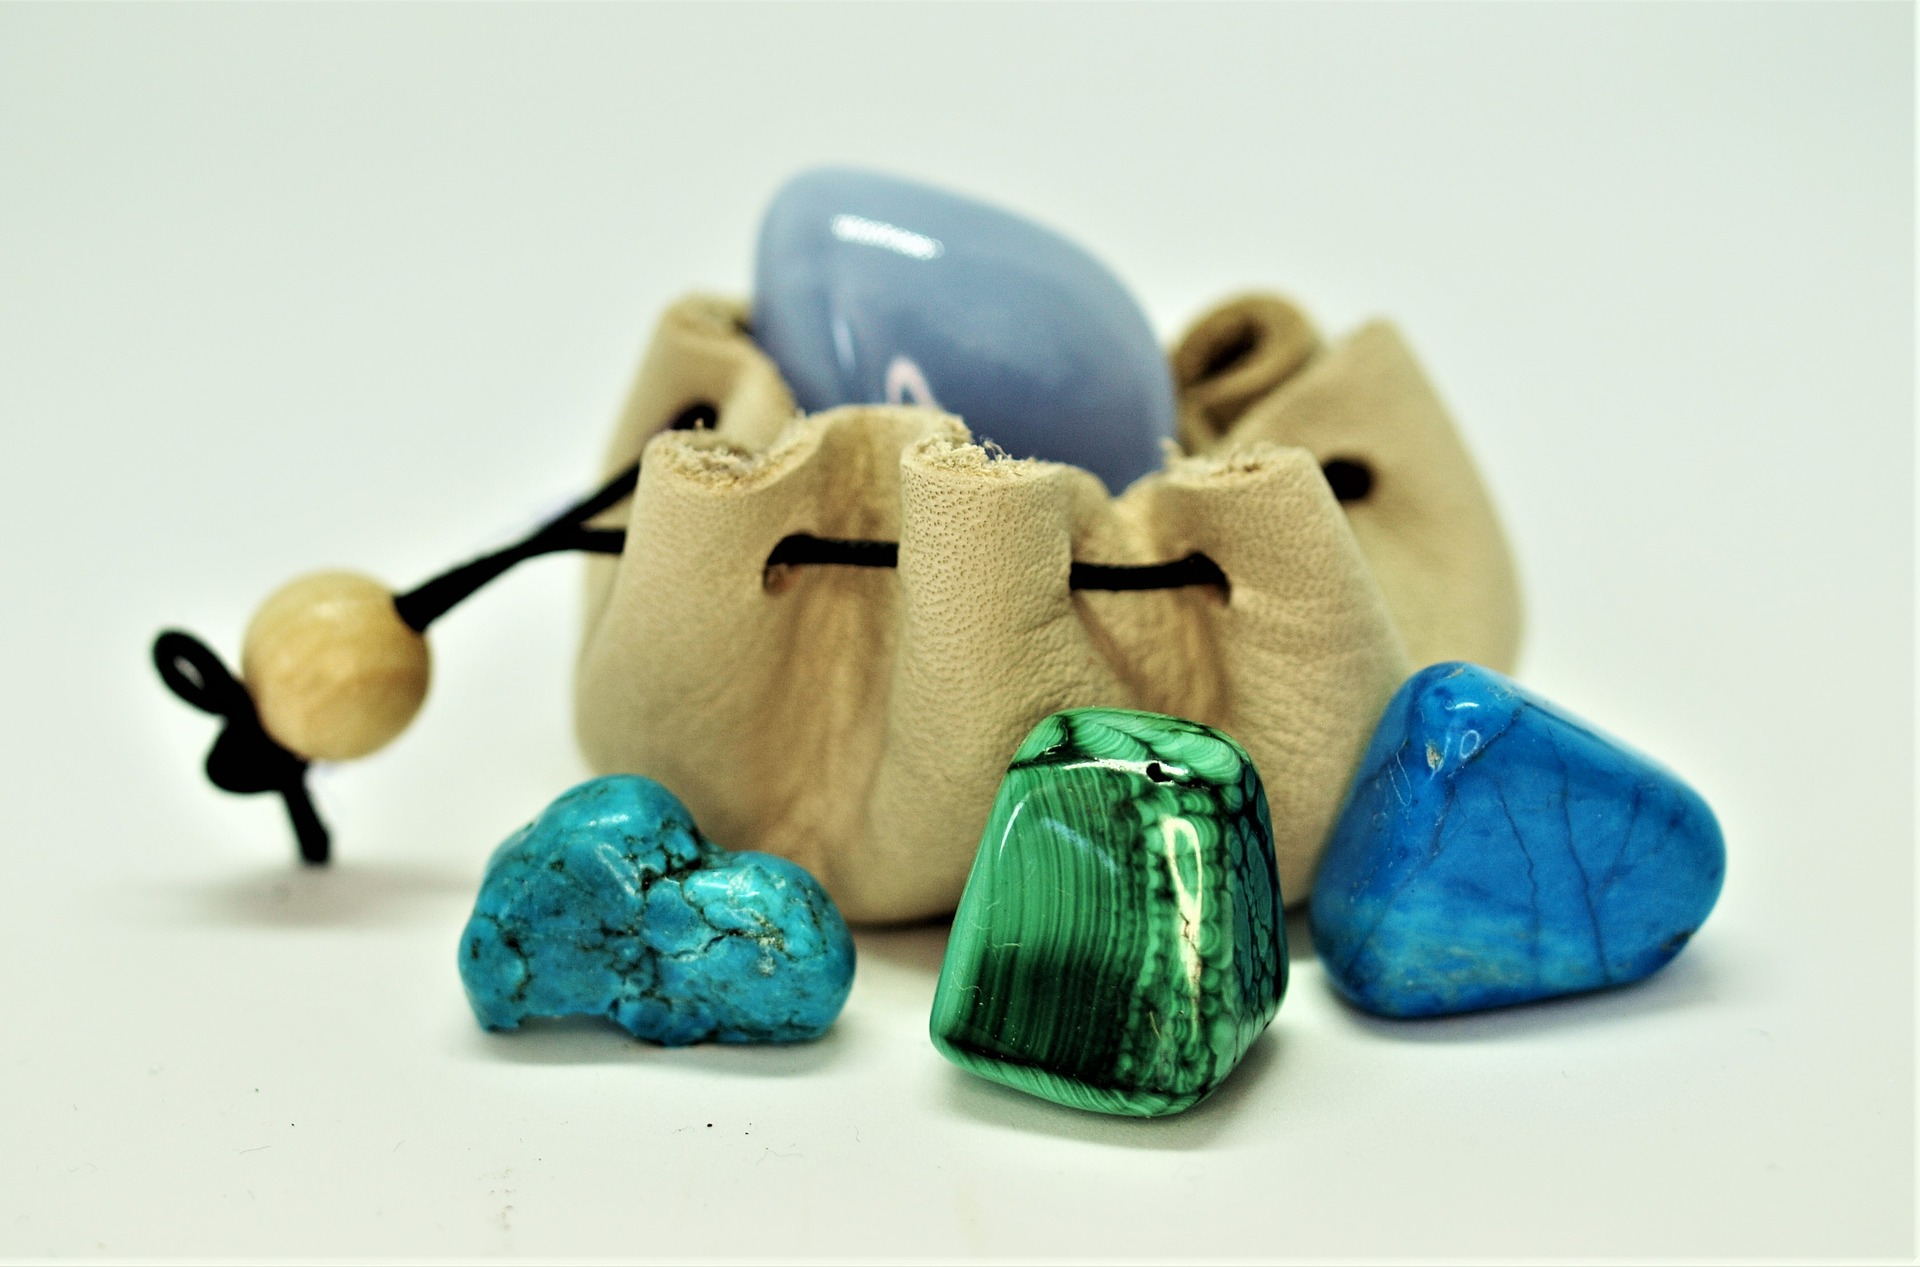 Crystal Healing - Benefits of The Apatite Crystal - Stacey Chillemi - Health & Lifestyle Coach